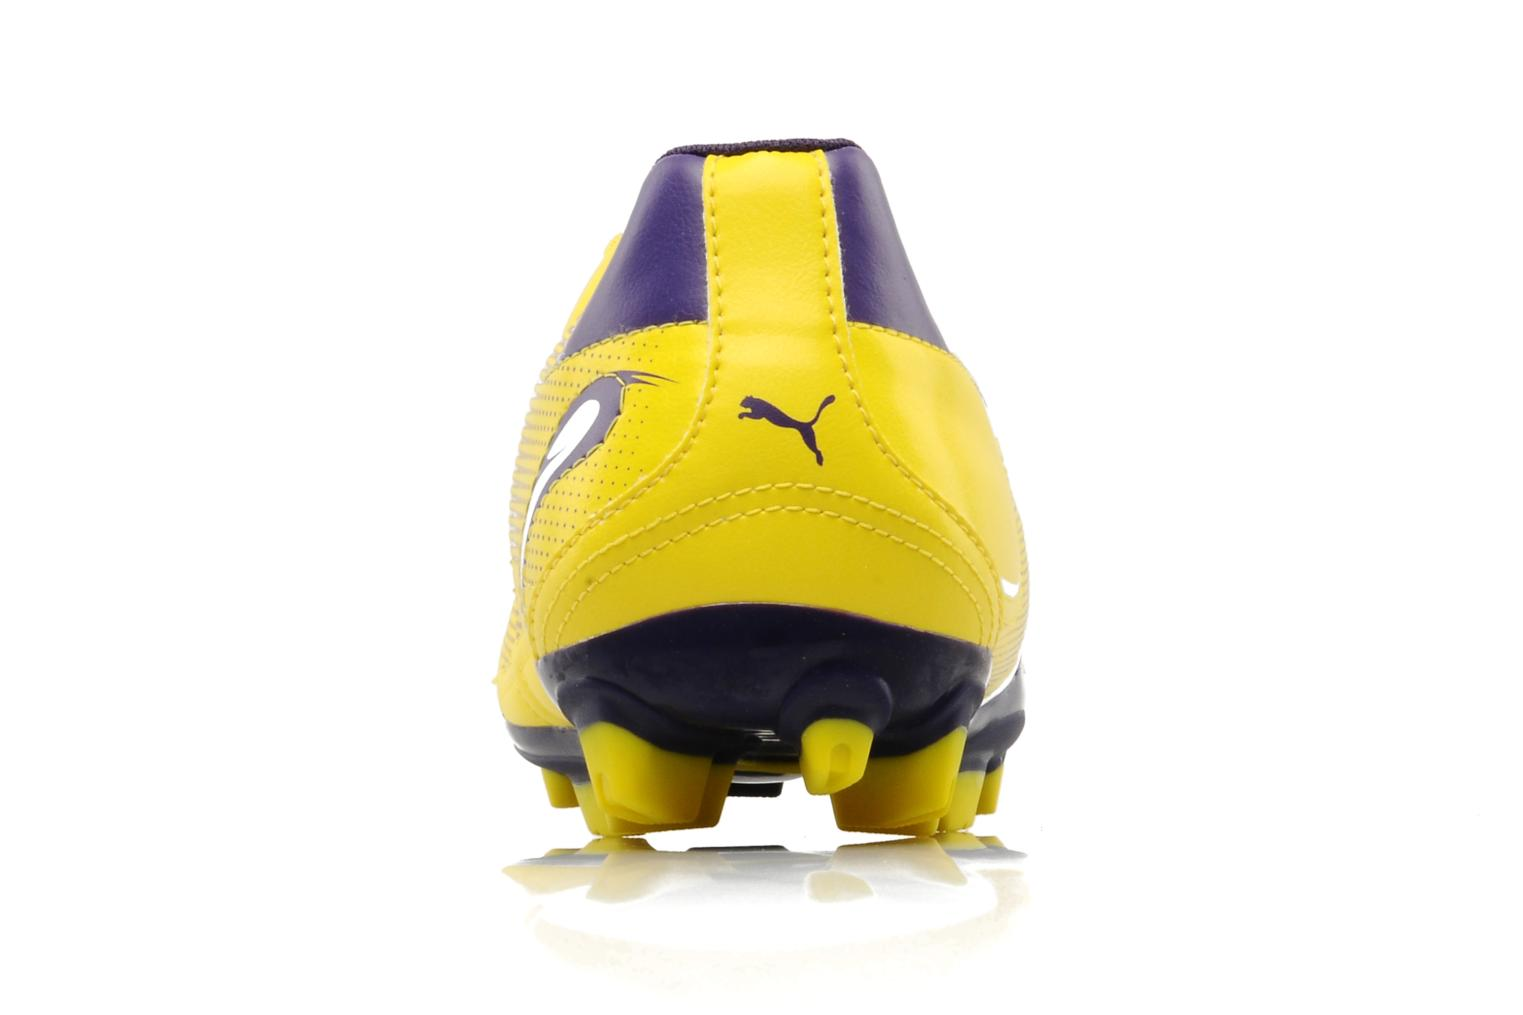 v6-11 iFG vibrant yellow prchte purple white